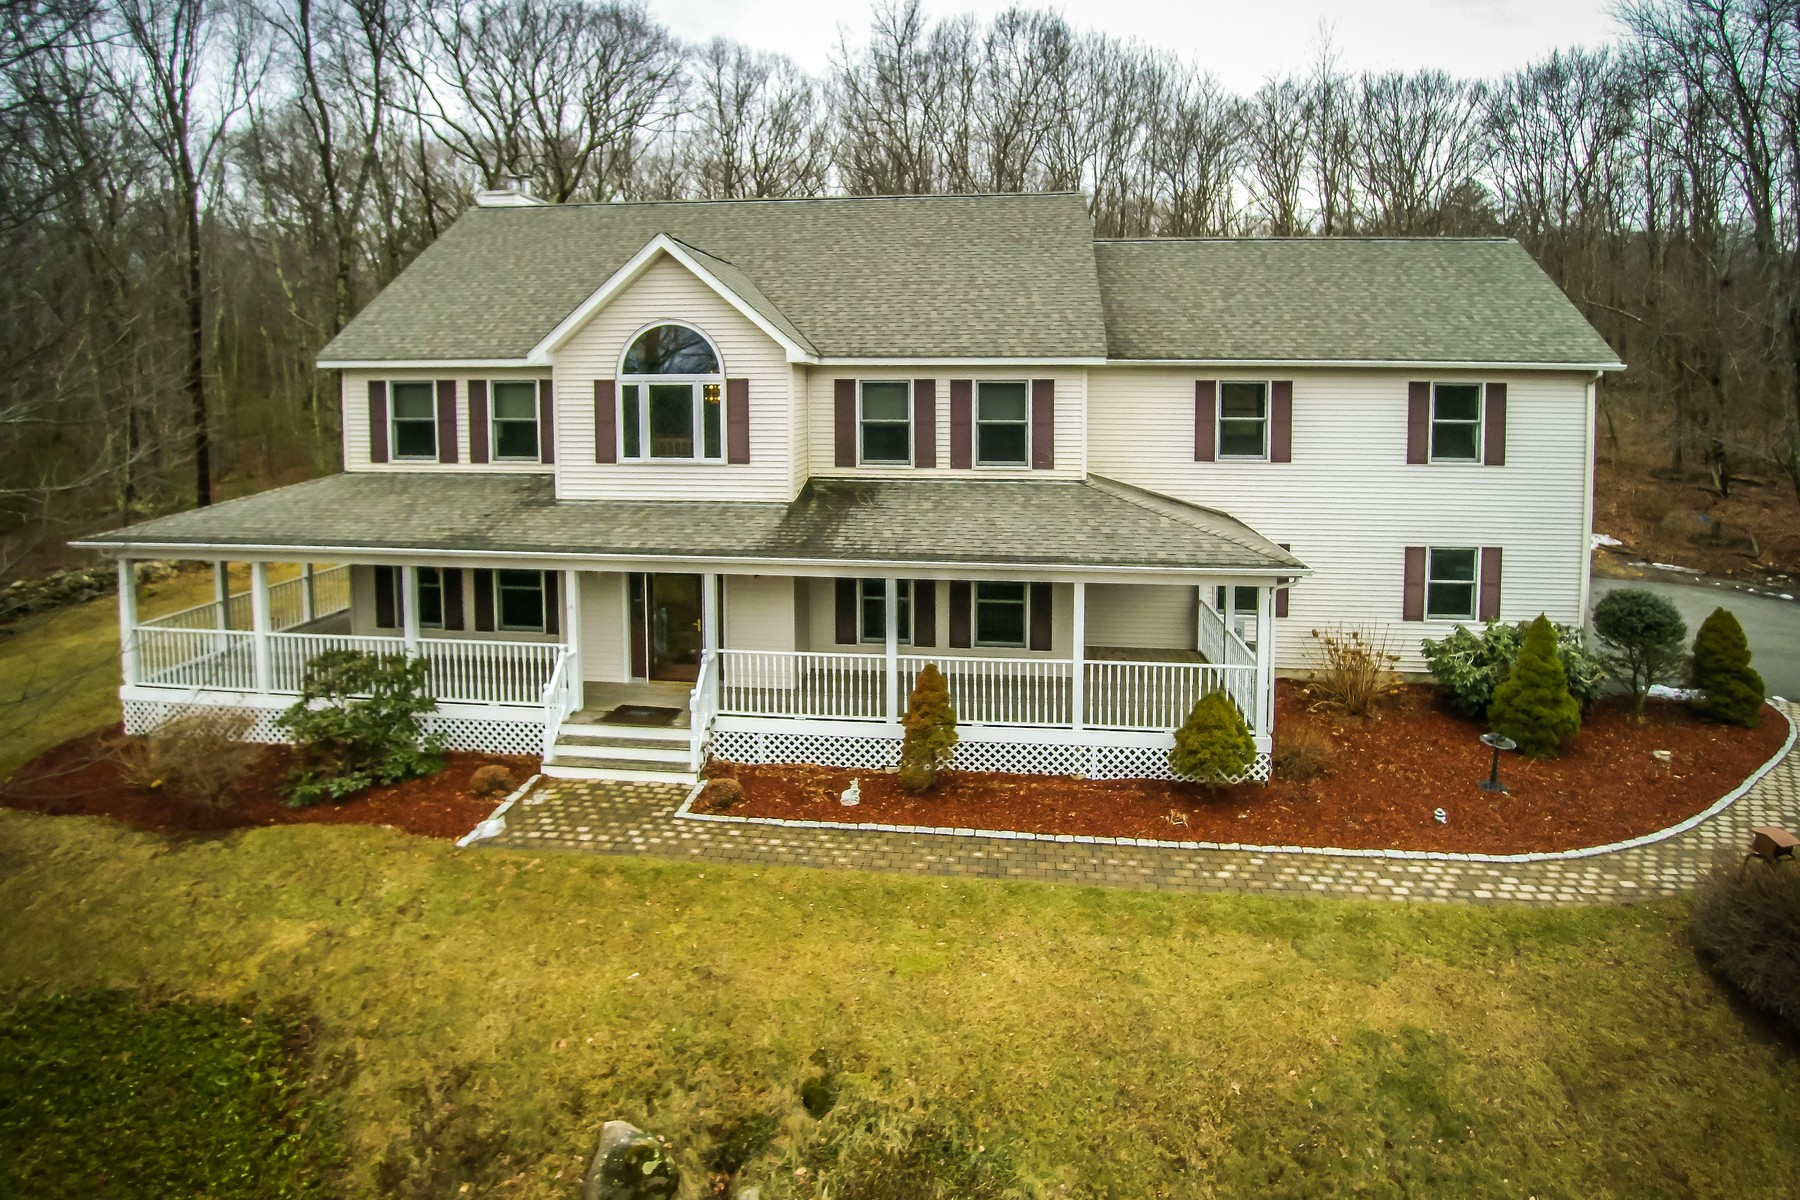 Single Family Home for Sale at Stately Northeast Facing Colonial 50 Orchard Street Upton, Massachusetts 01568 United States